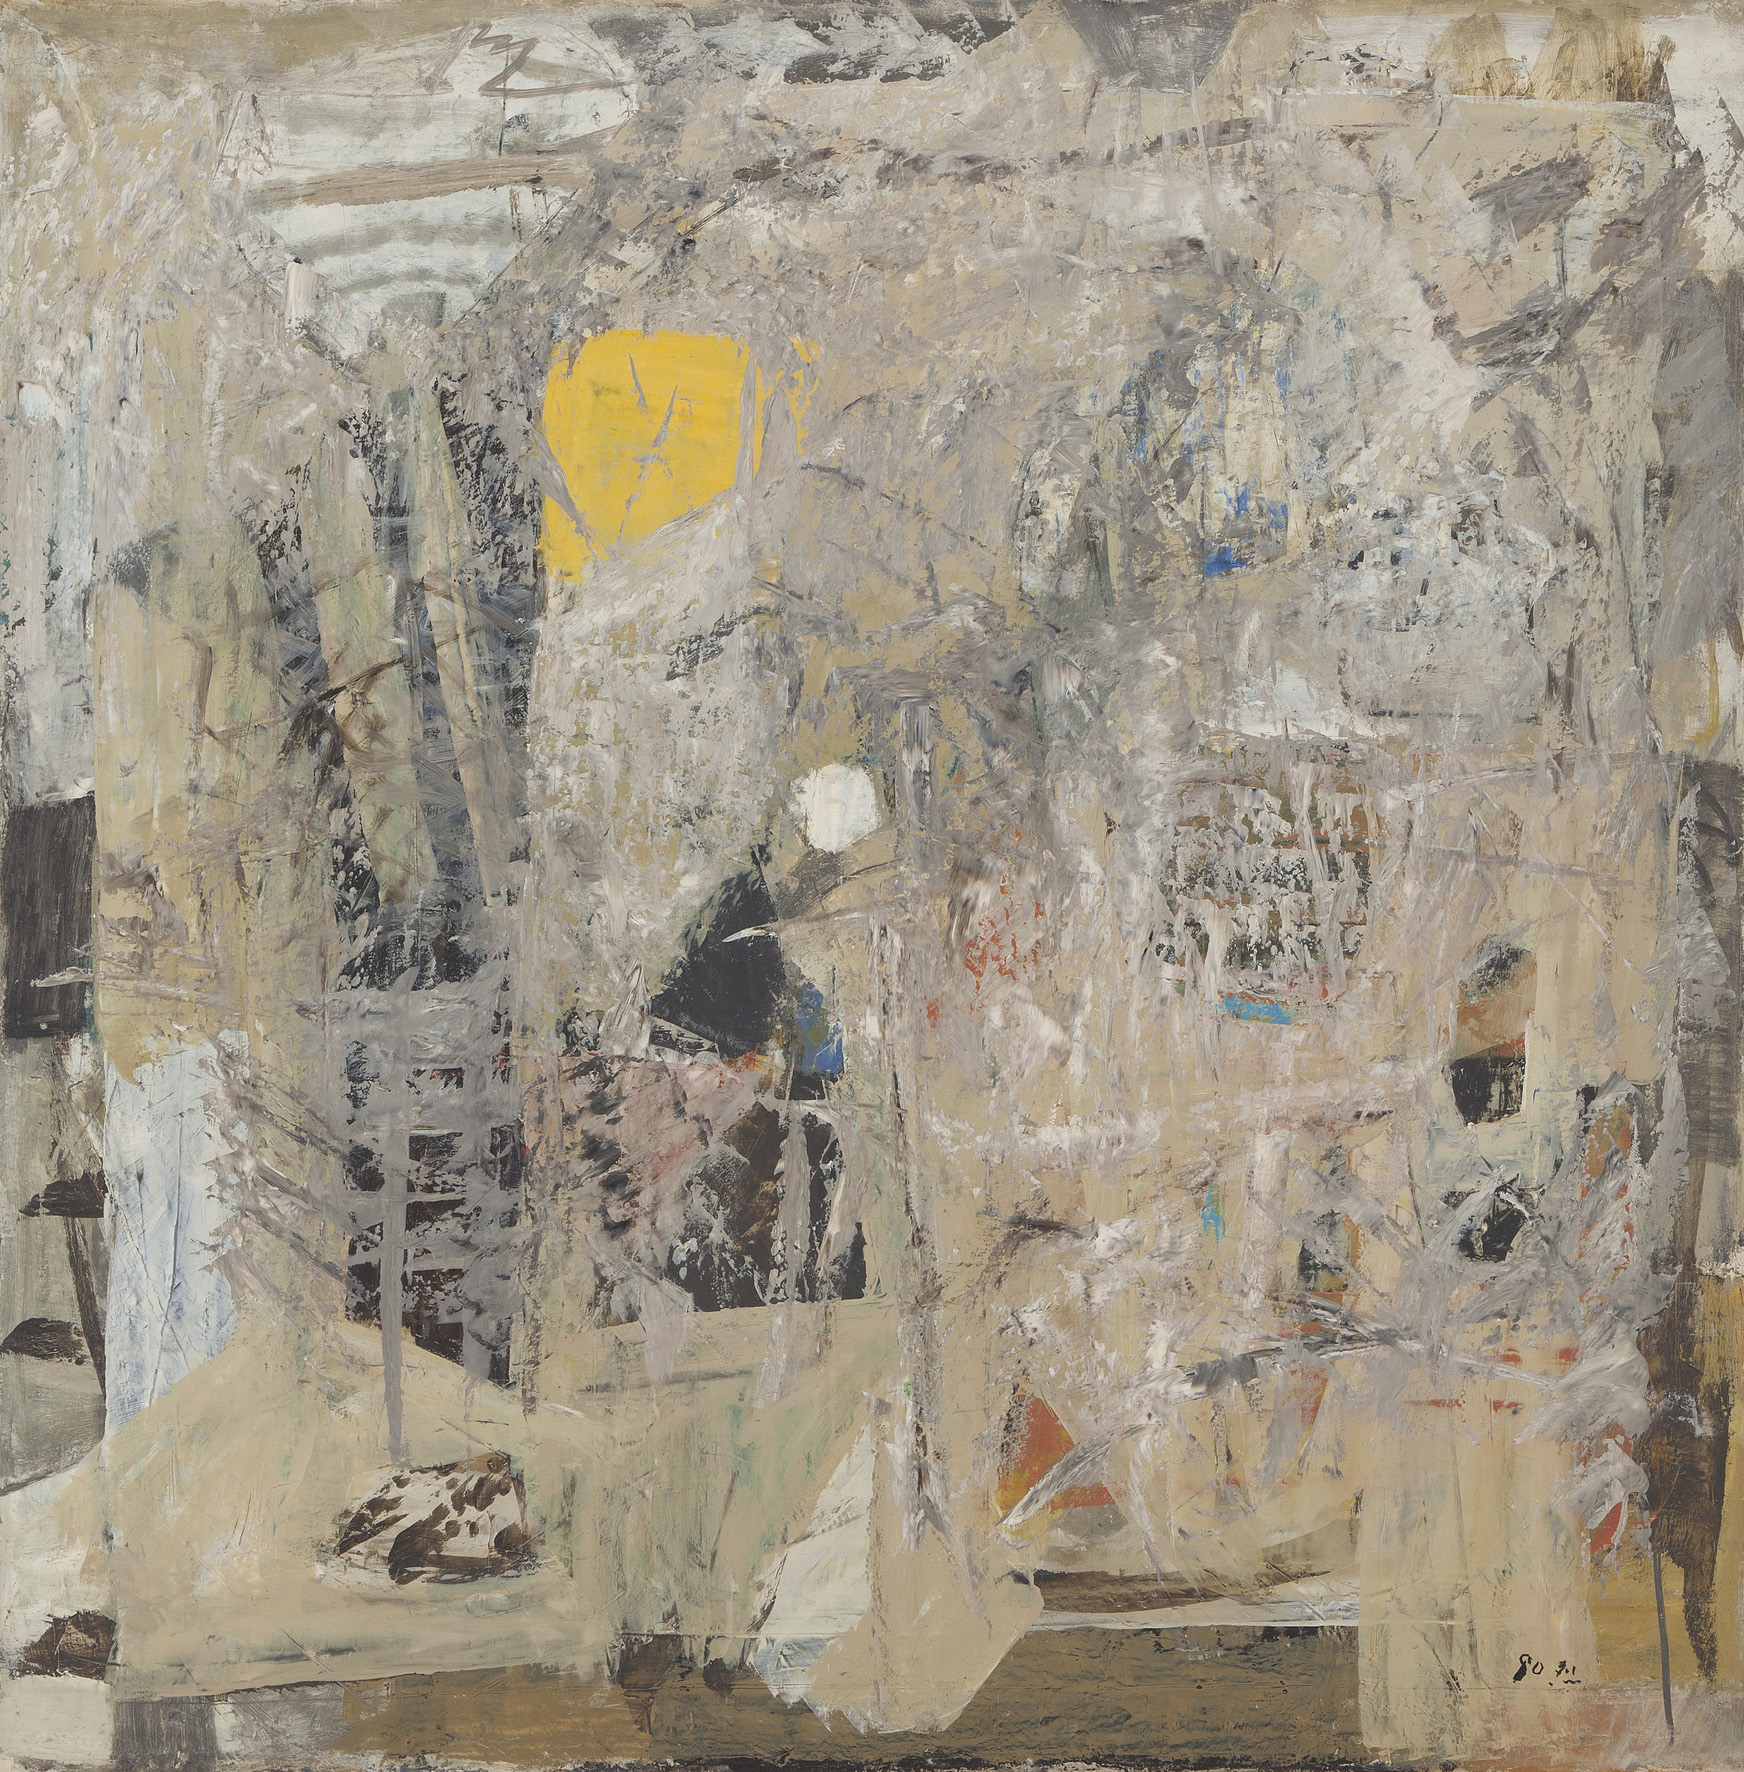 Untitled, 1980, Mixed Media, 115x115cm